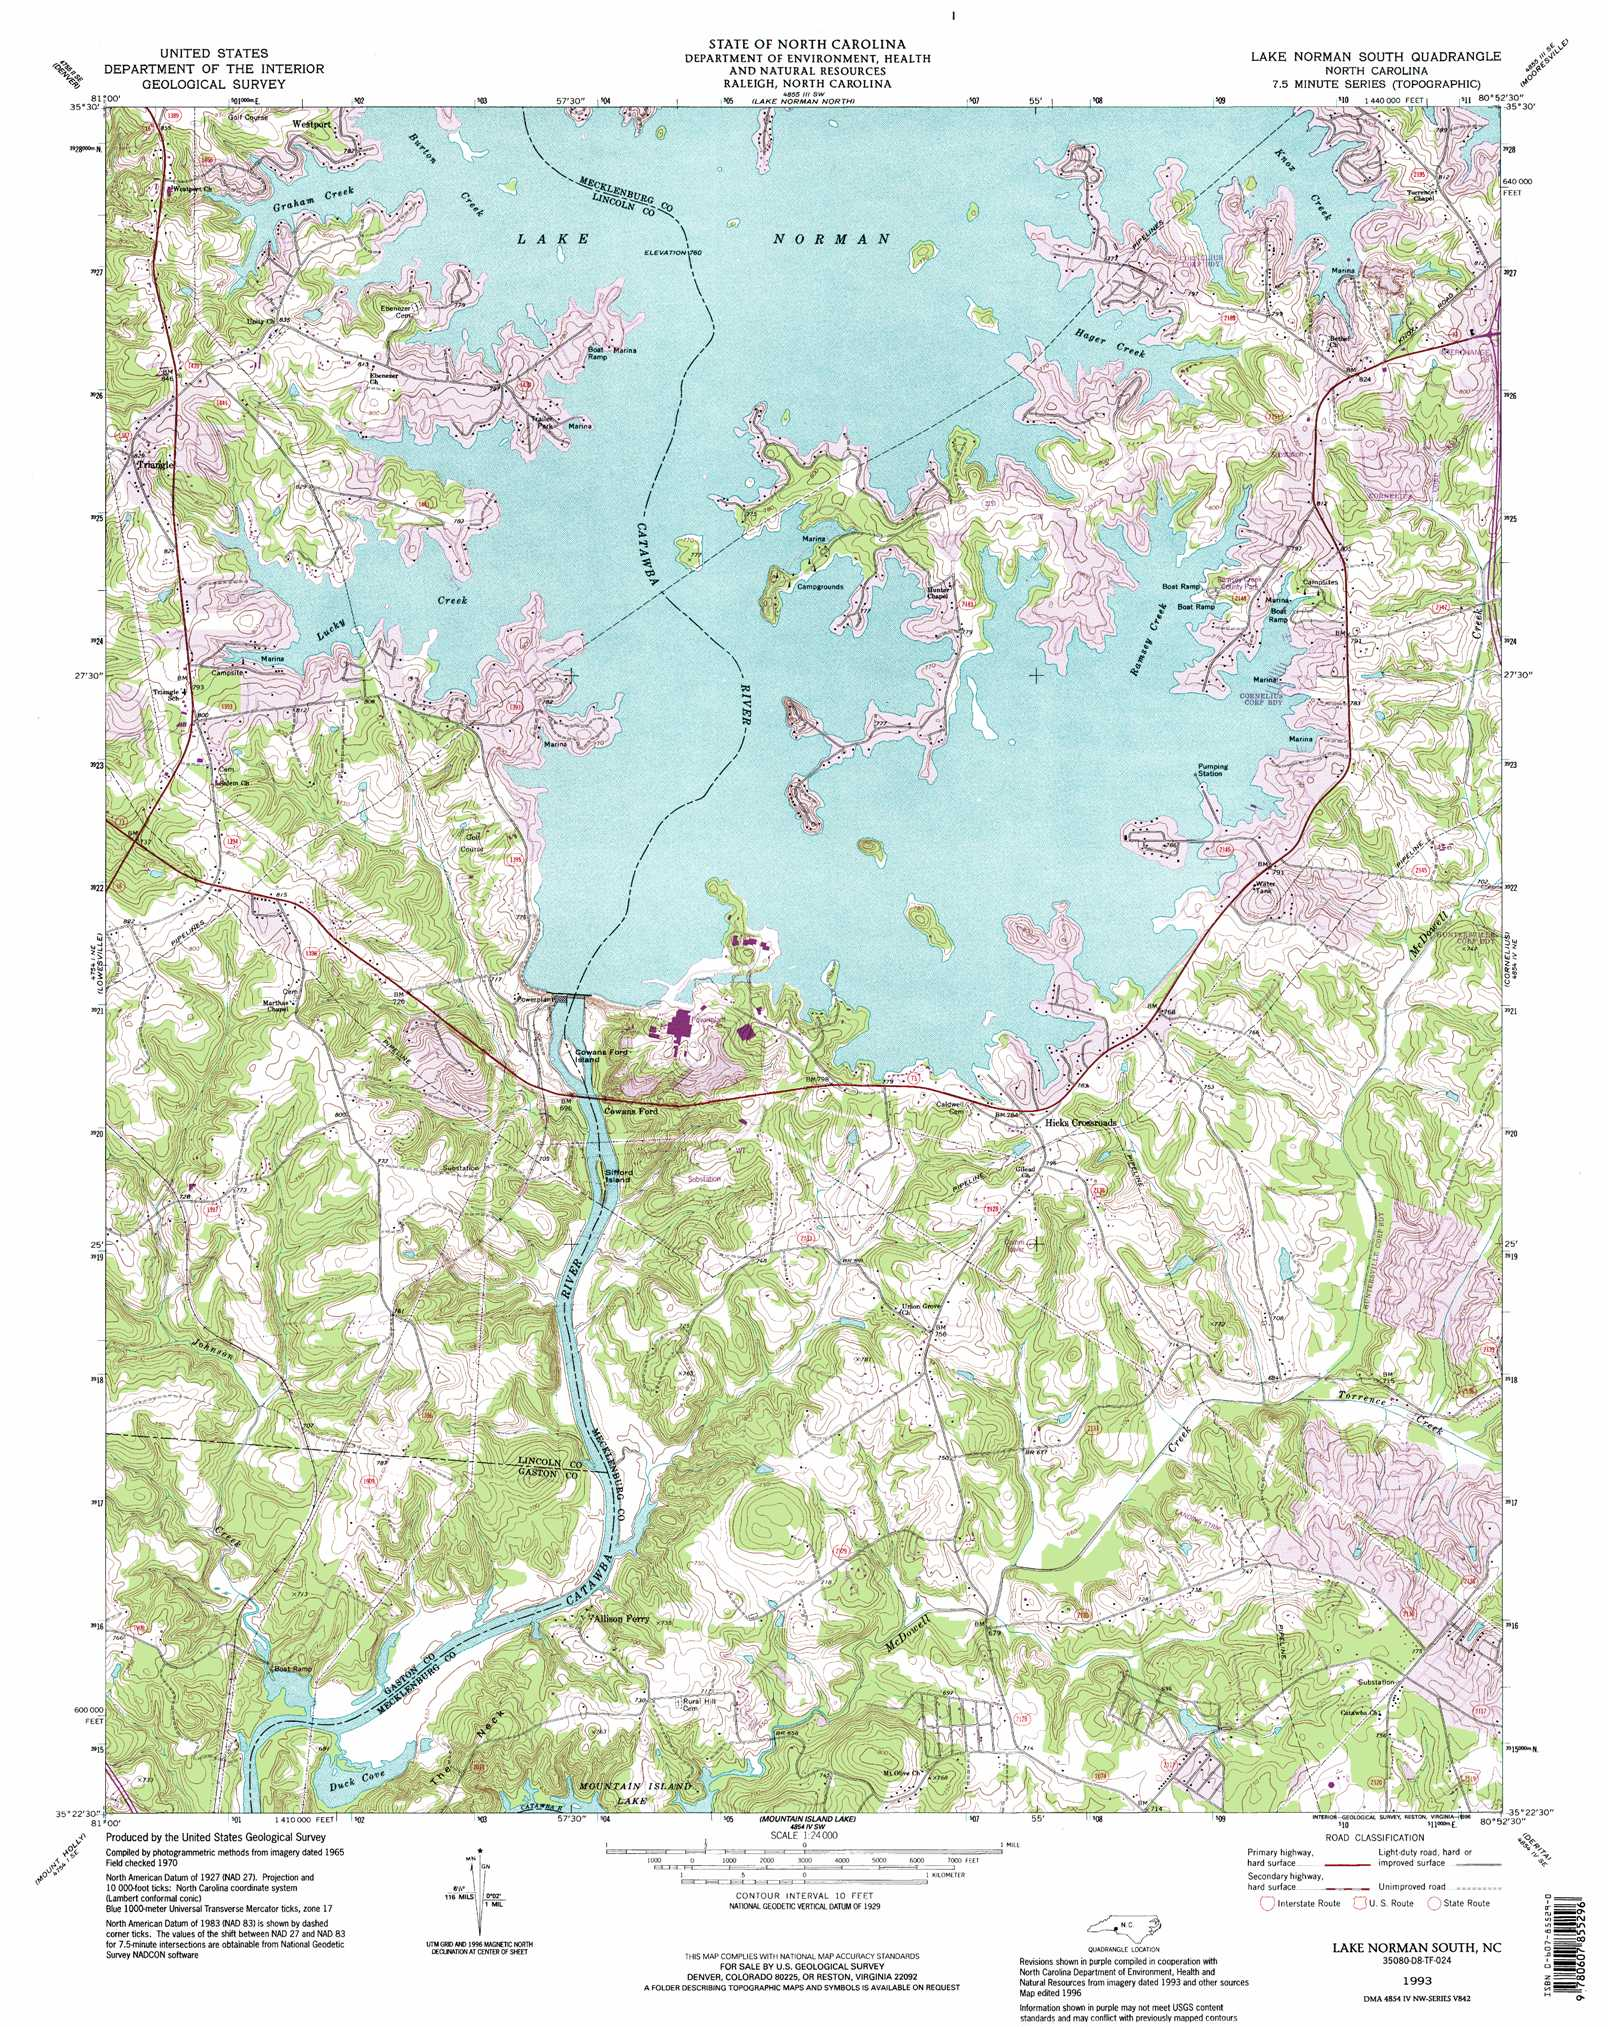 Lake Norman South topographic map NC USGS Topo Quad 35080d8